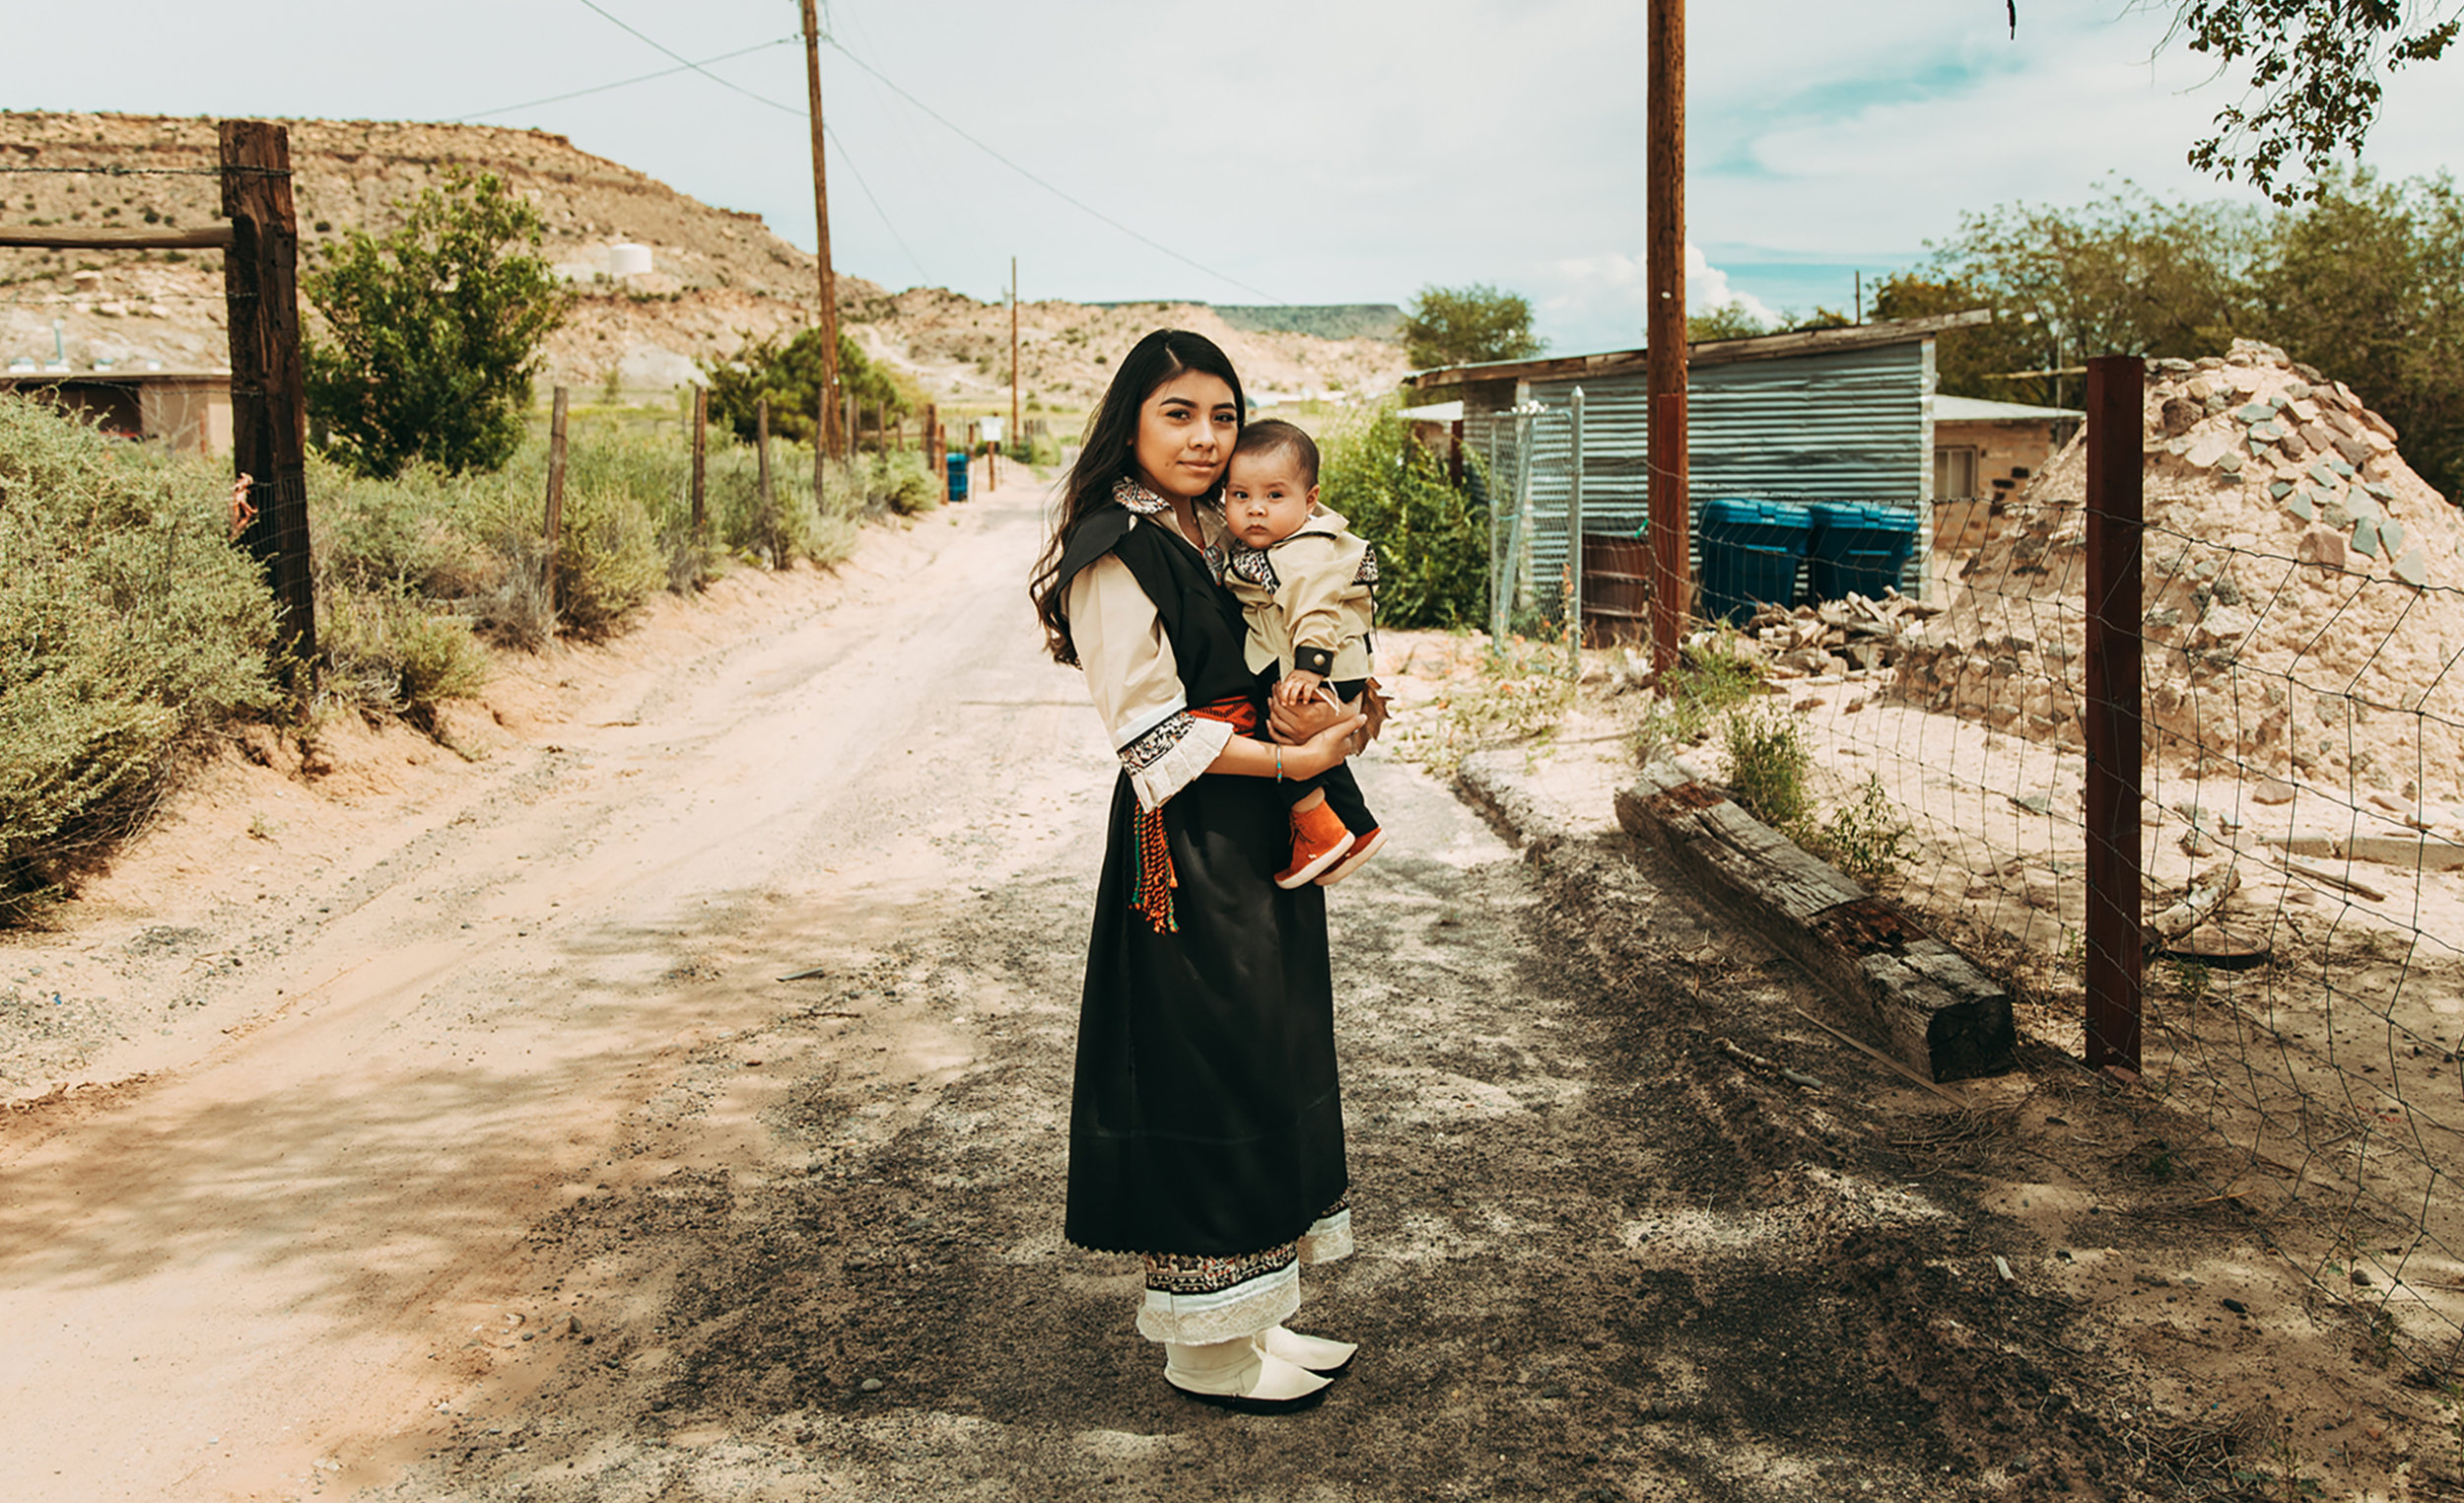 New Mexico Breastfeeding Mothers - A project focused on making breastfeeding more visible and less stigmatized amongst indigenous communities in New Mexico.